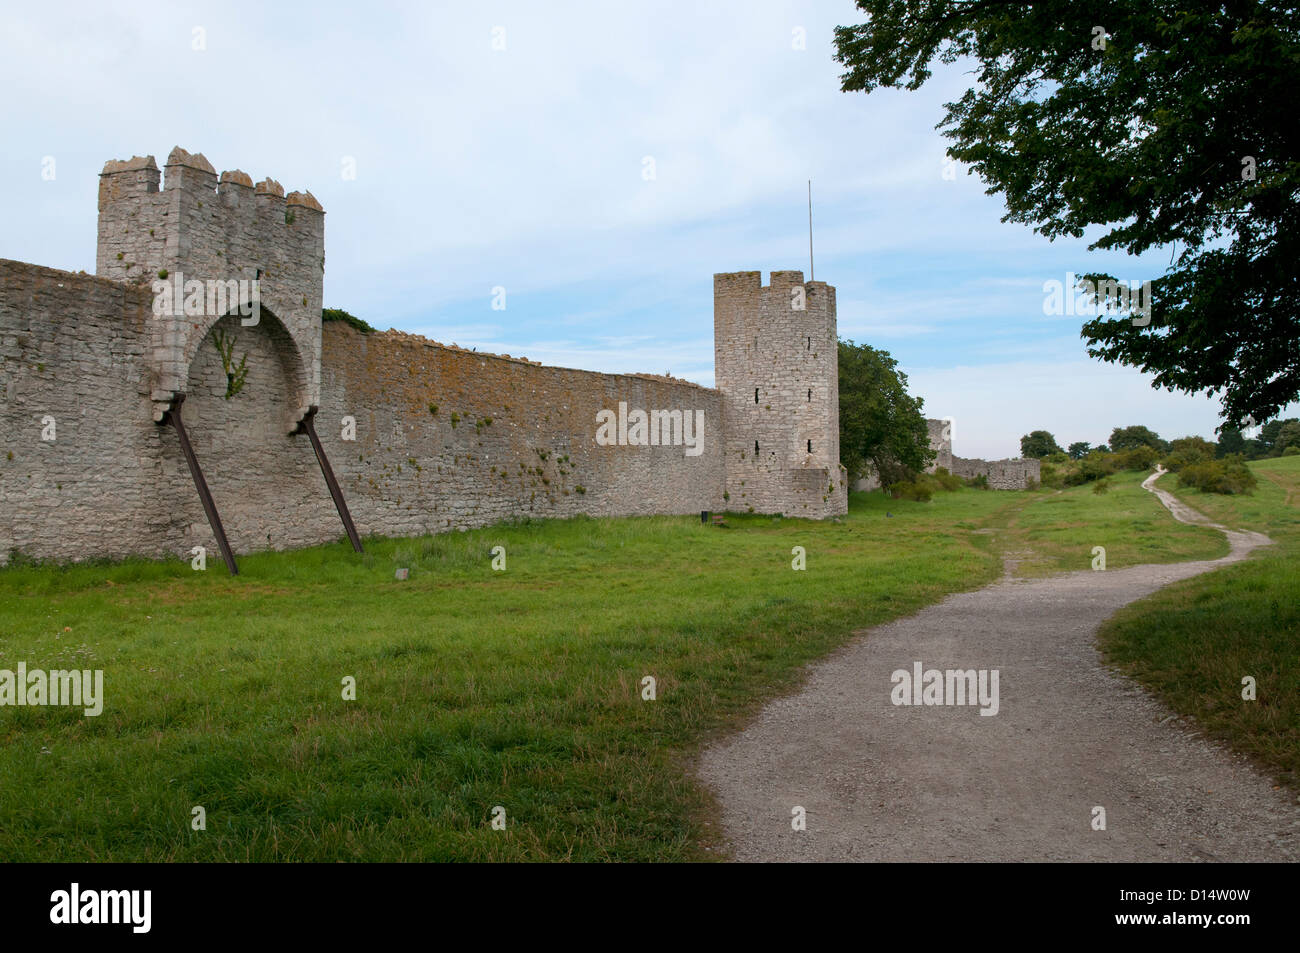 City wall of of the Hanseatic town of Visby on the island of Gotland in Sweden - Stock Image